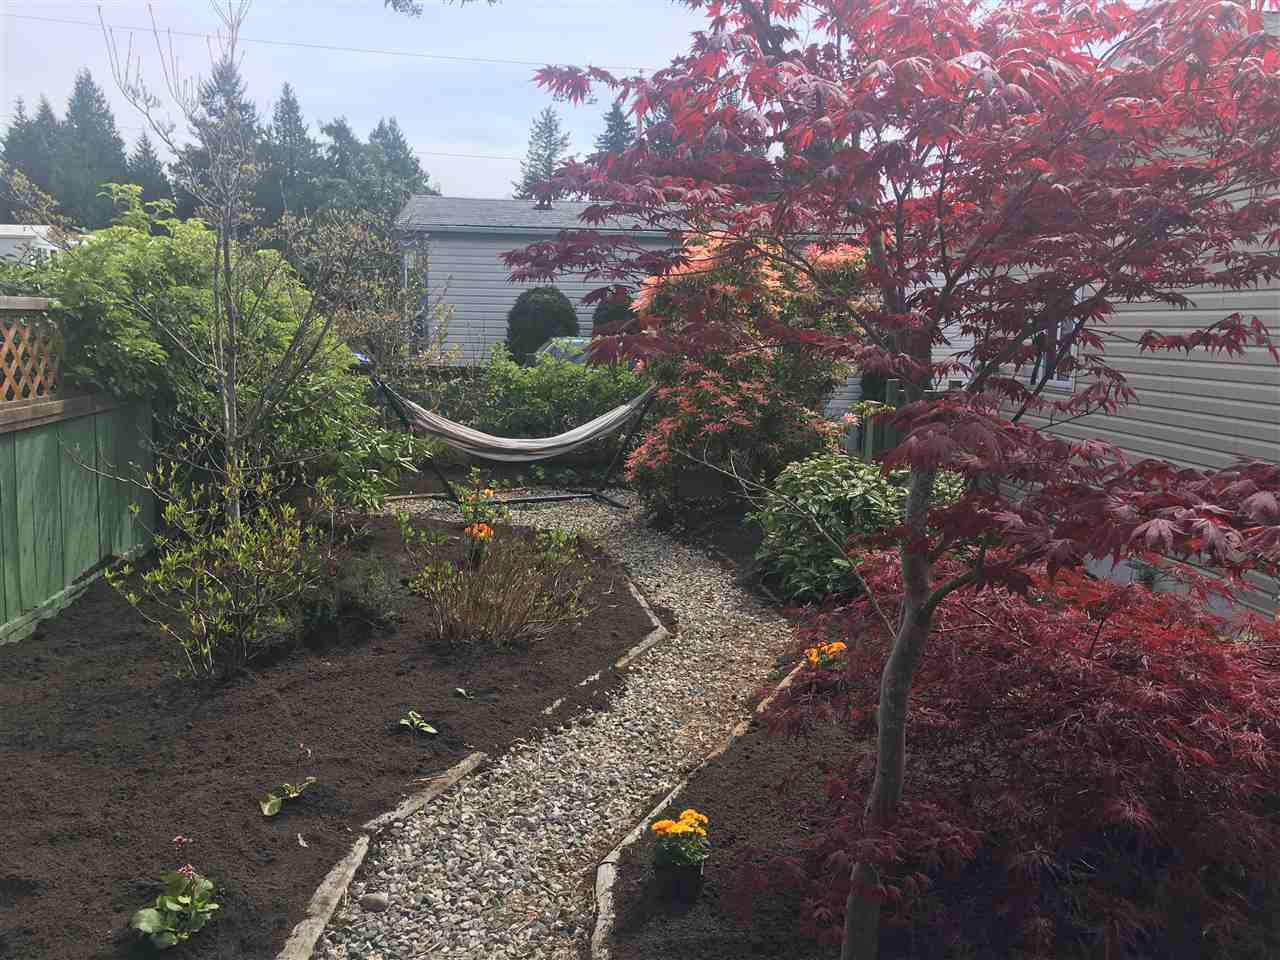 """Main Photo: 32 5575 MASON Road in Sechelt: Sechelt District Manufactured Home for sale in """"MASON ROAD MANUFACTURED HOME COMMUNITY"""" (Sunshine Coast)  : MLS®# R2264697"""